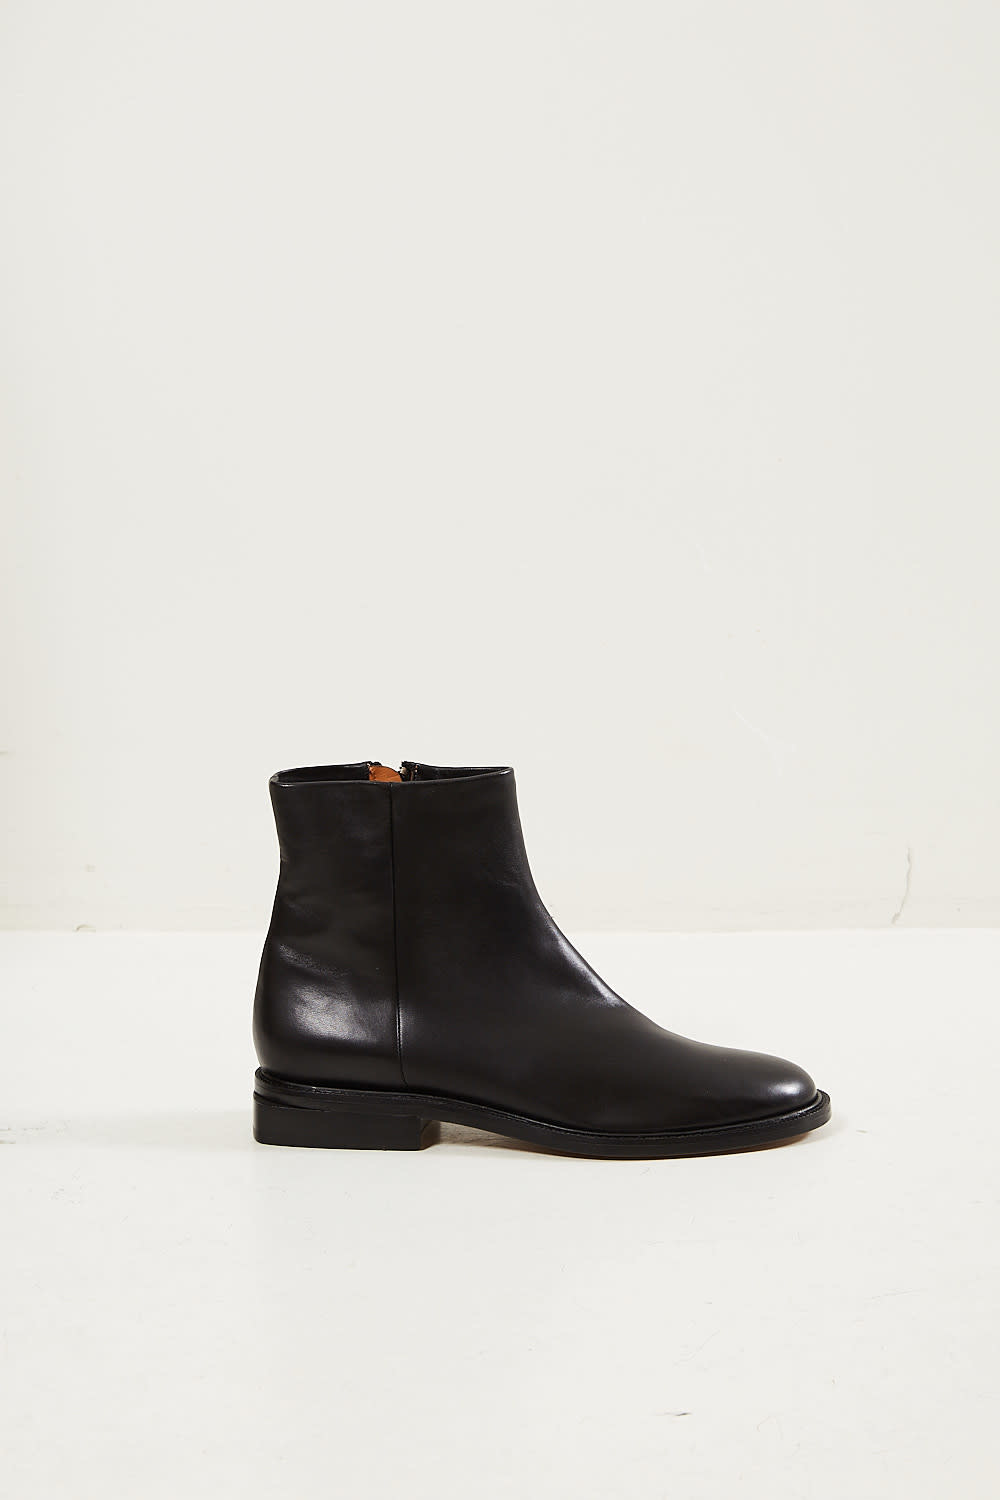 Clergerie - Rafa lambs leather boots